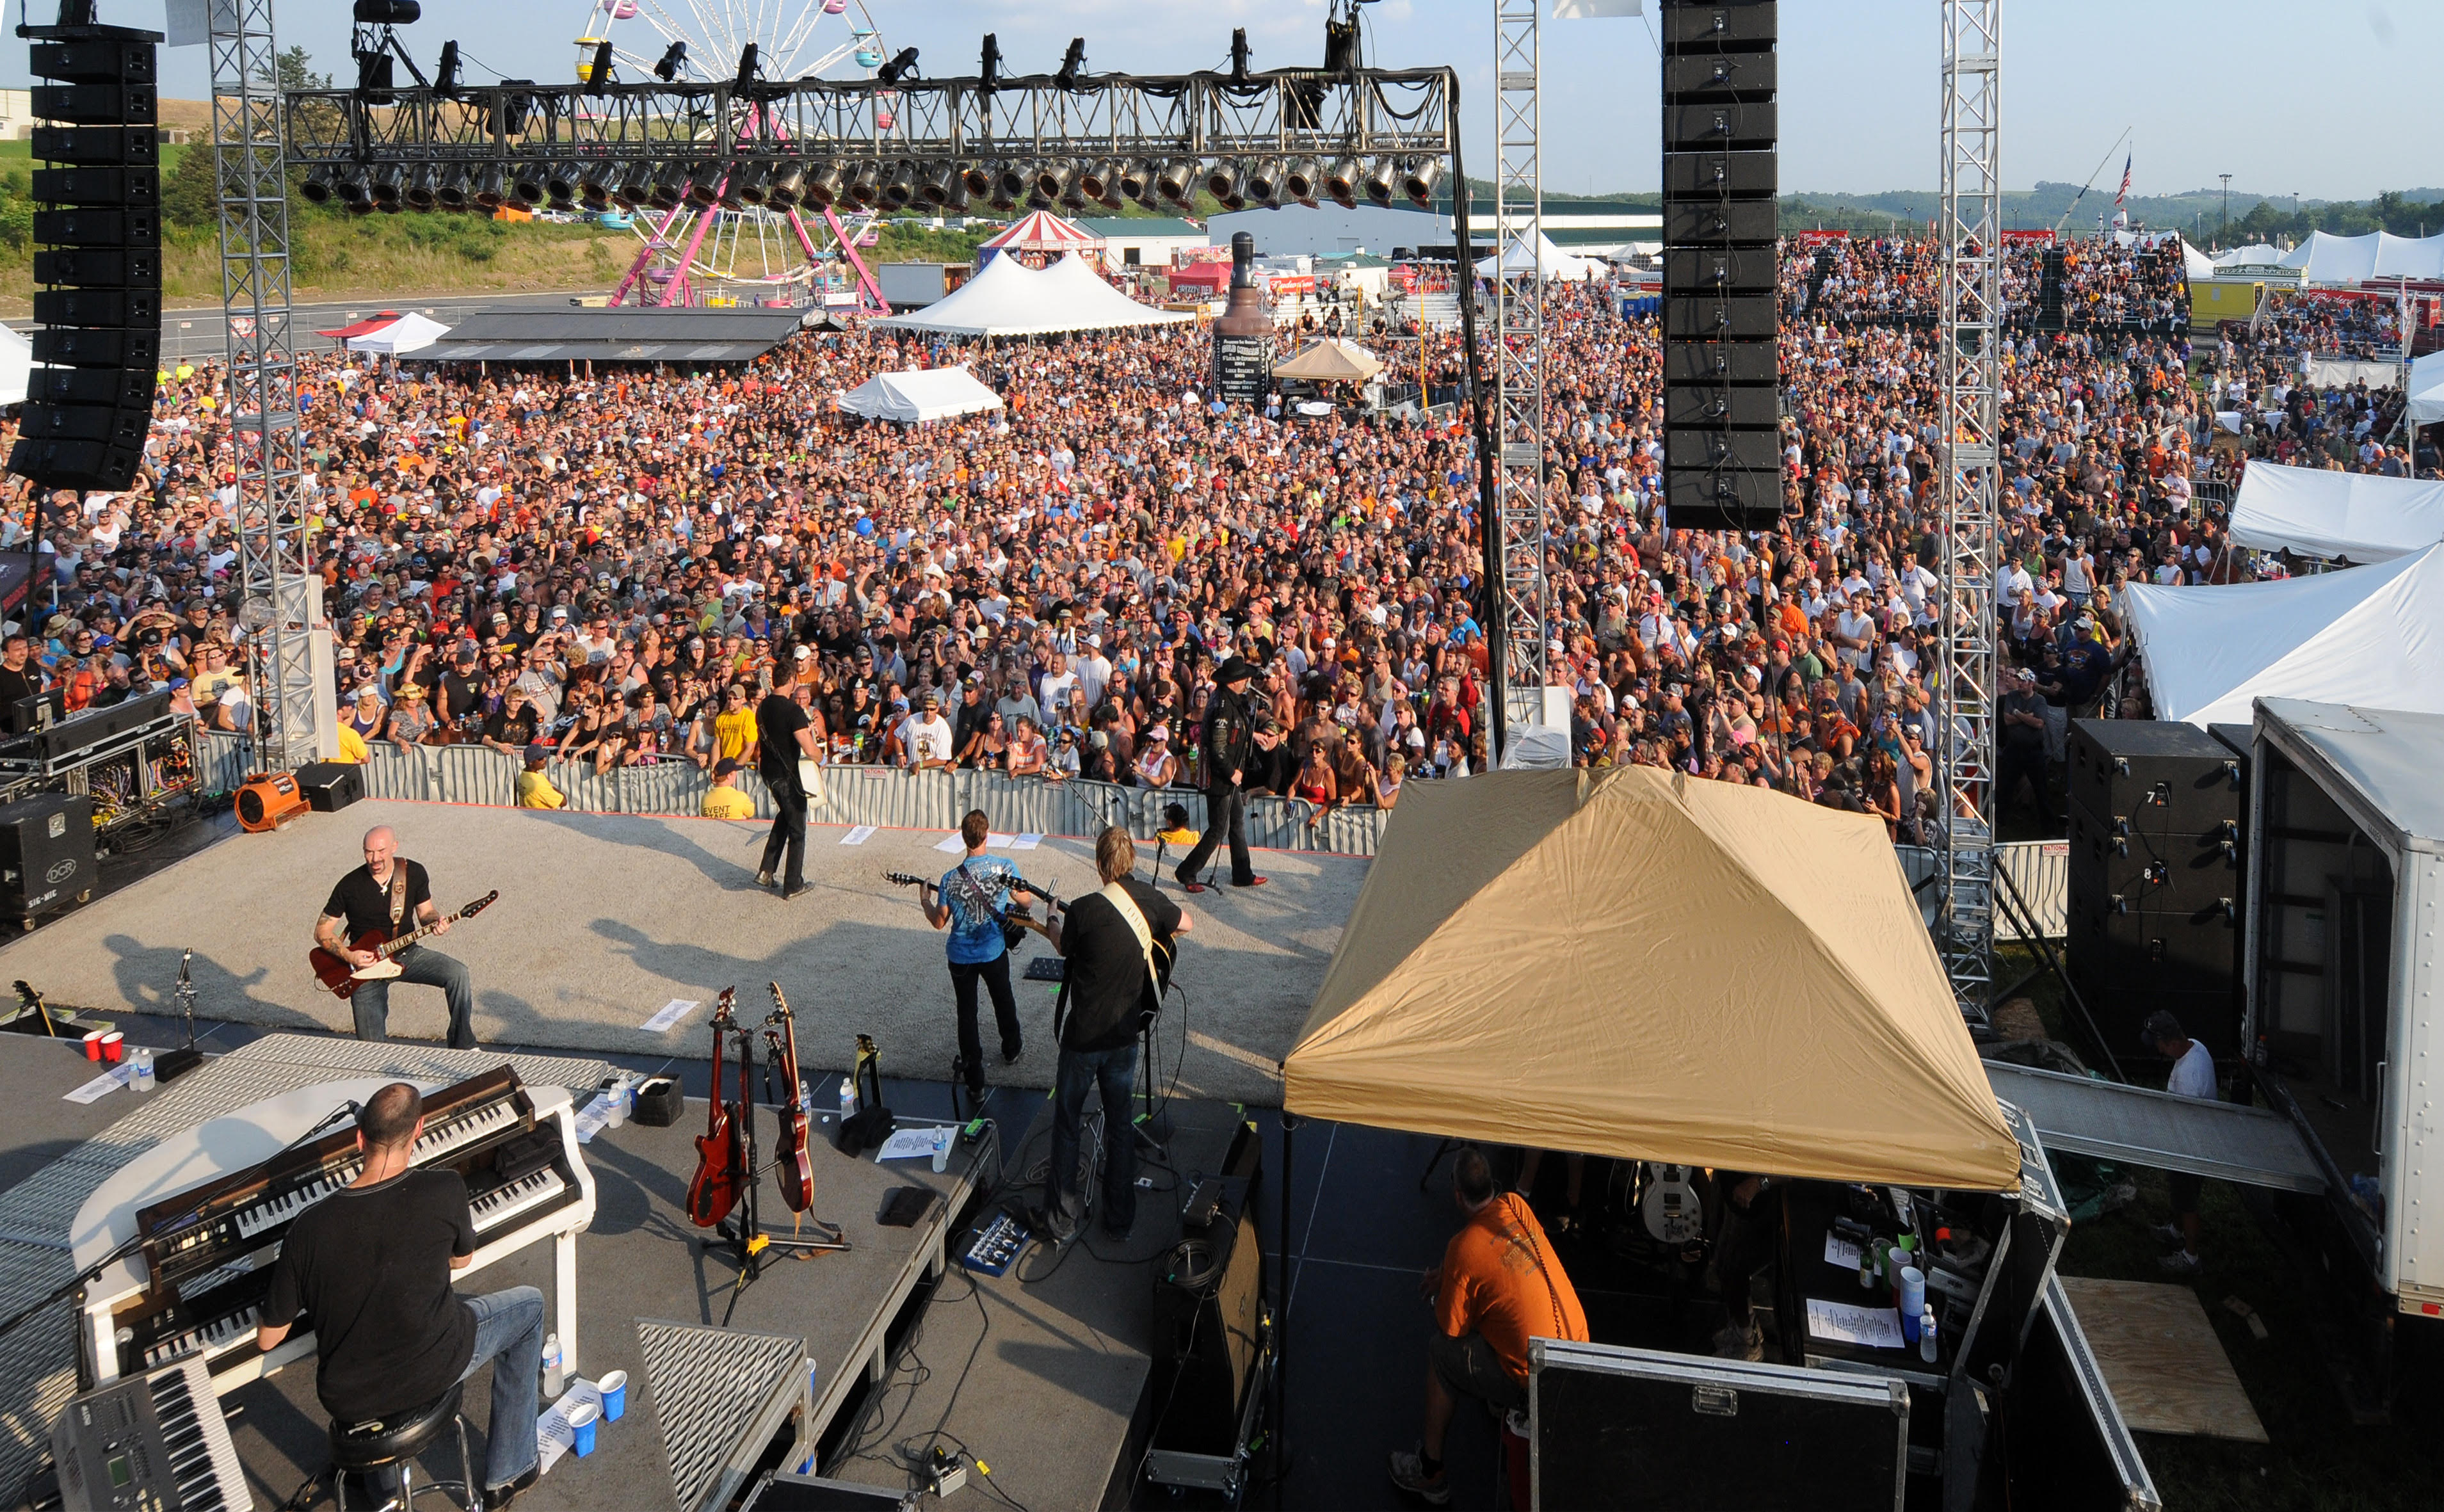 The concerts are a big part of MountainFest Motorcycle Rally. Montgomery Gentry is shown here performing at a previous MountainFest. (photo: MountainFest and Greater Morgantown Convention & Visitors Bureau)